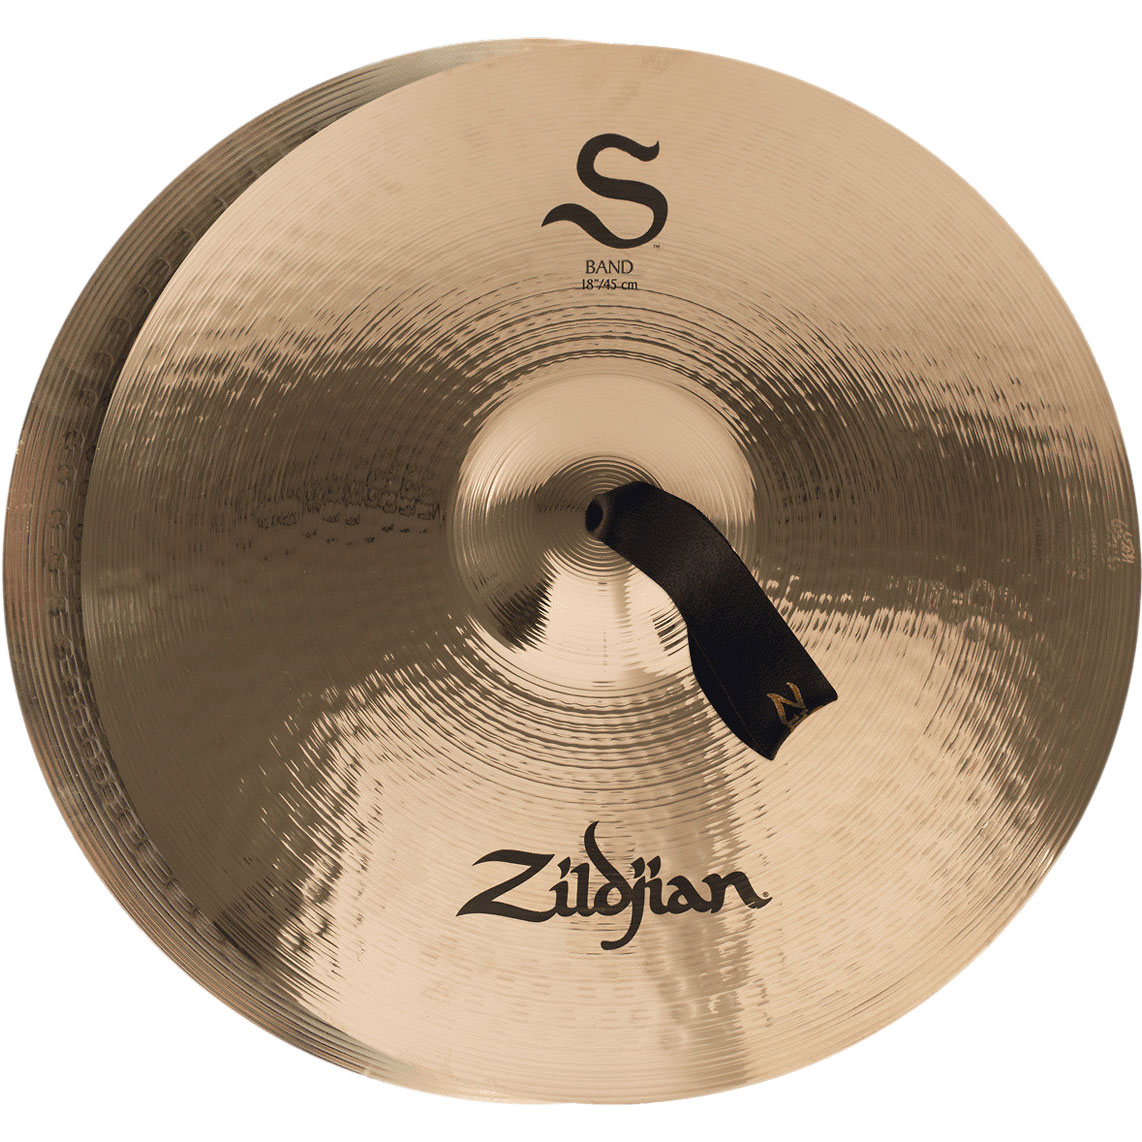 "Zildjian 18"" S Band Crash Cymbal Pair"